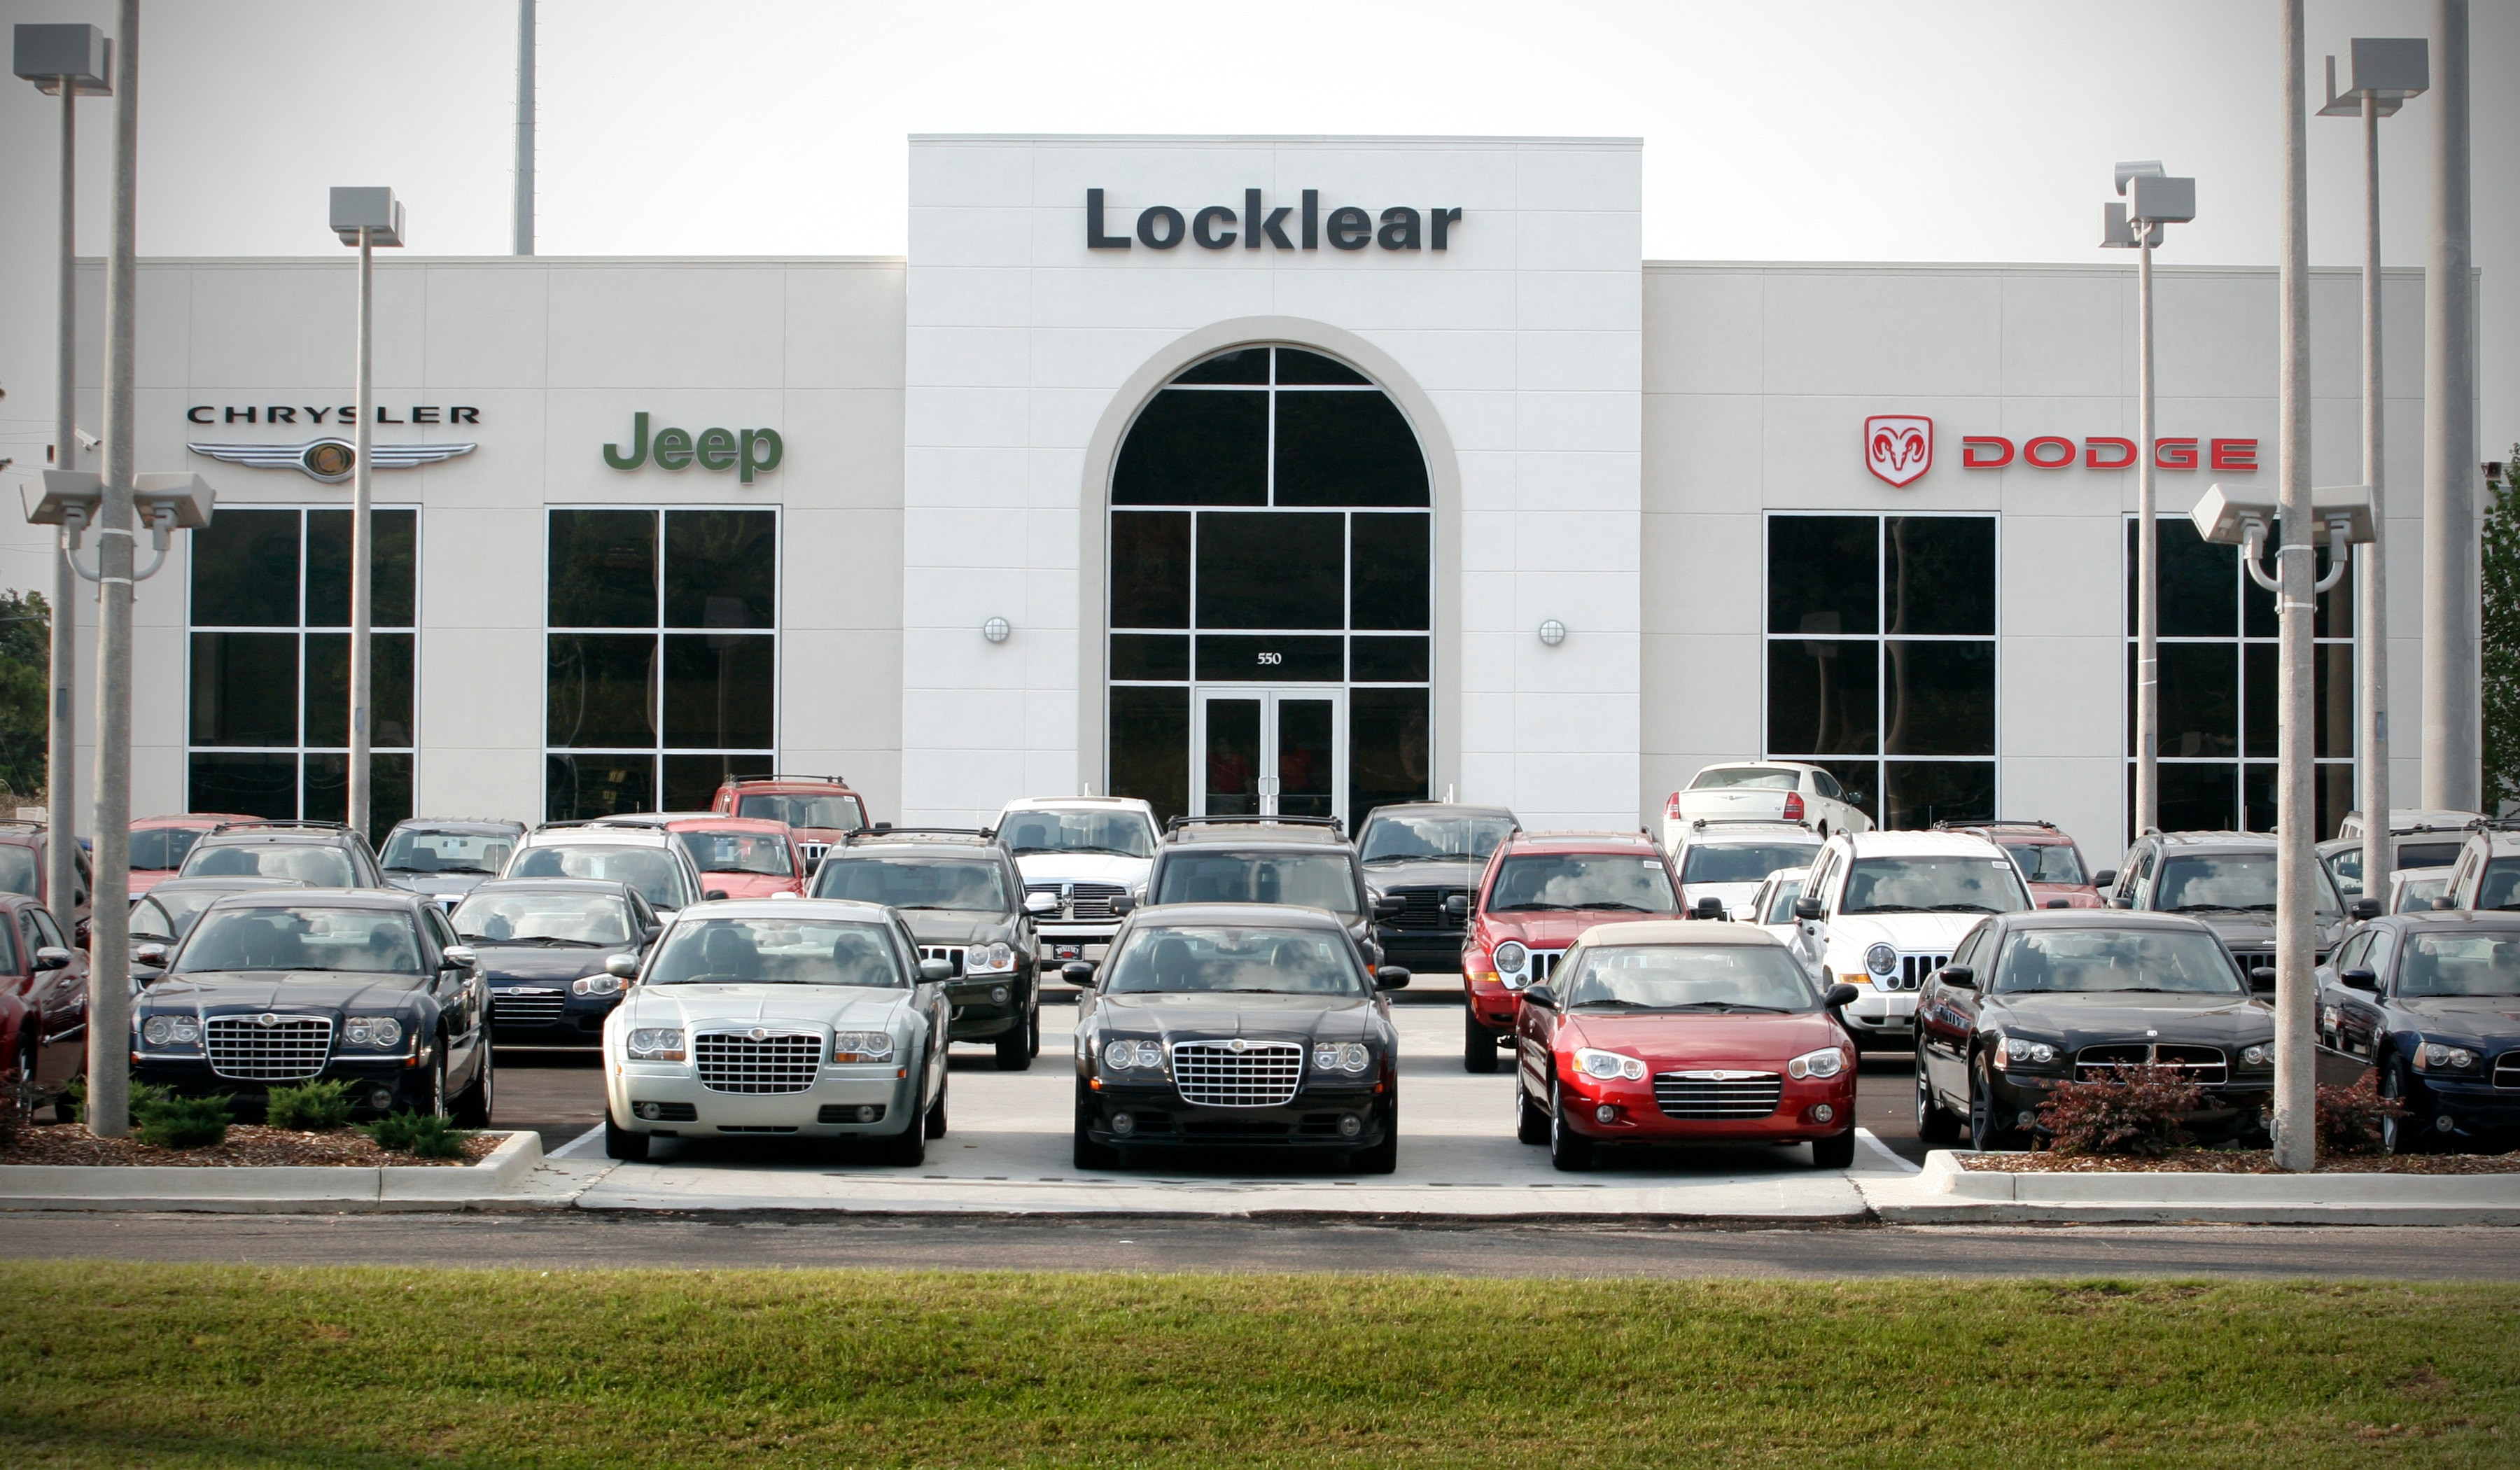 Used Cars Birmingham Lovely Jeep Dodge Dealer Fresh About Chrysler Jeep Dodge Ram New Used